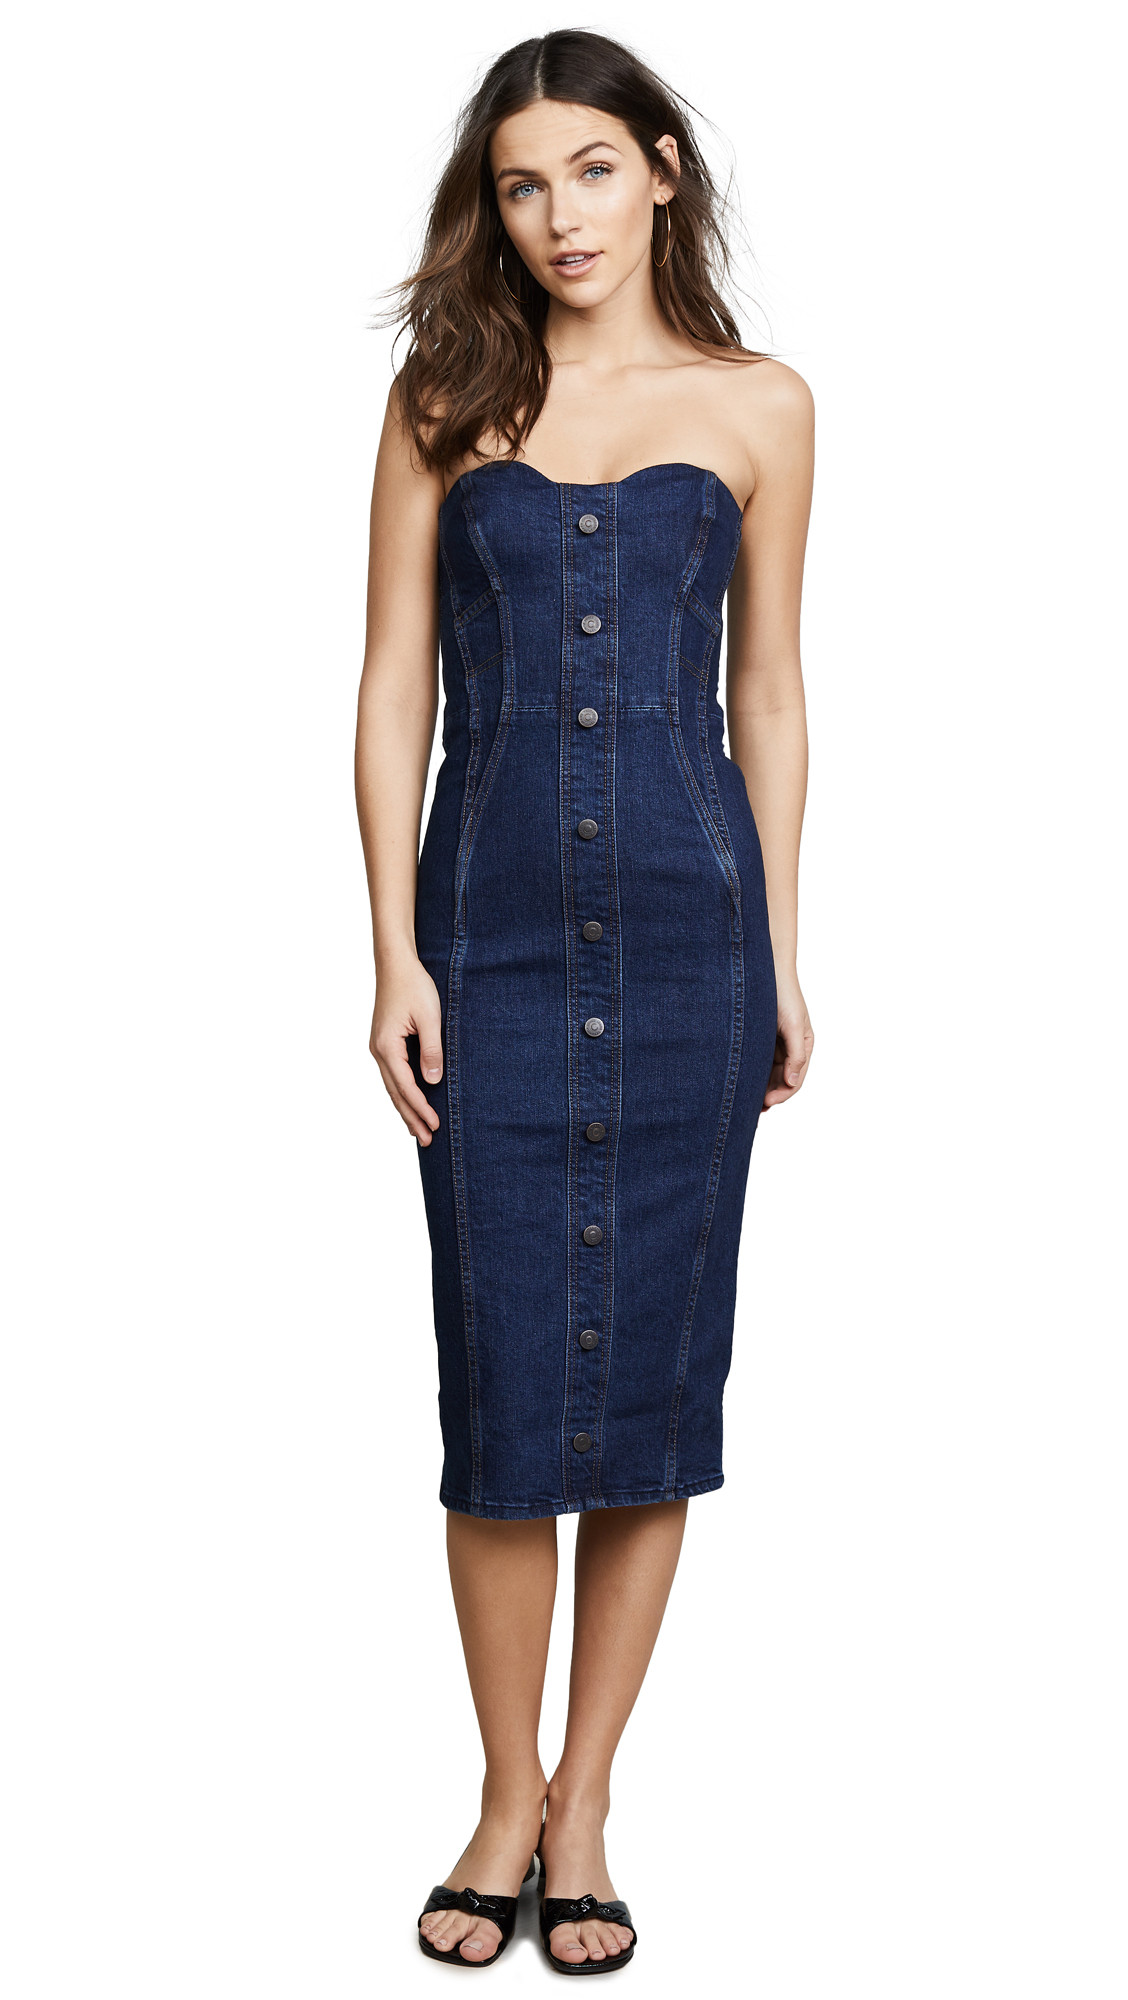 Veronica Beard Jean Liza Dress - Dark Stone Wash